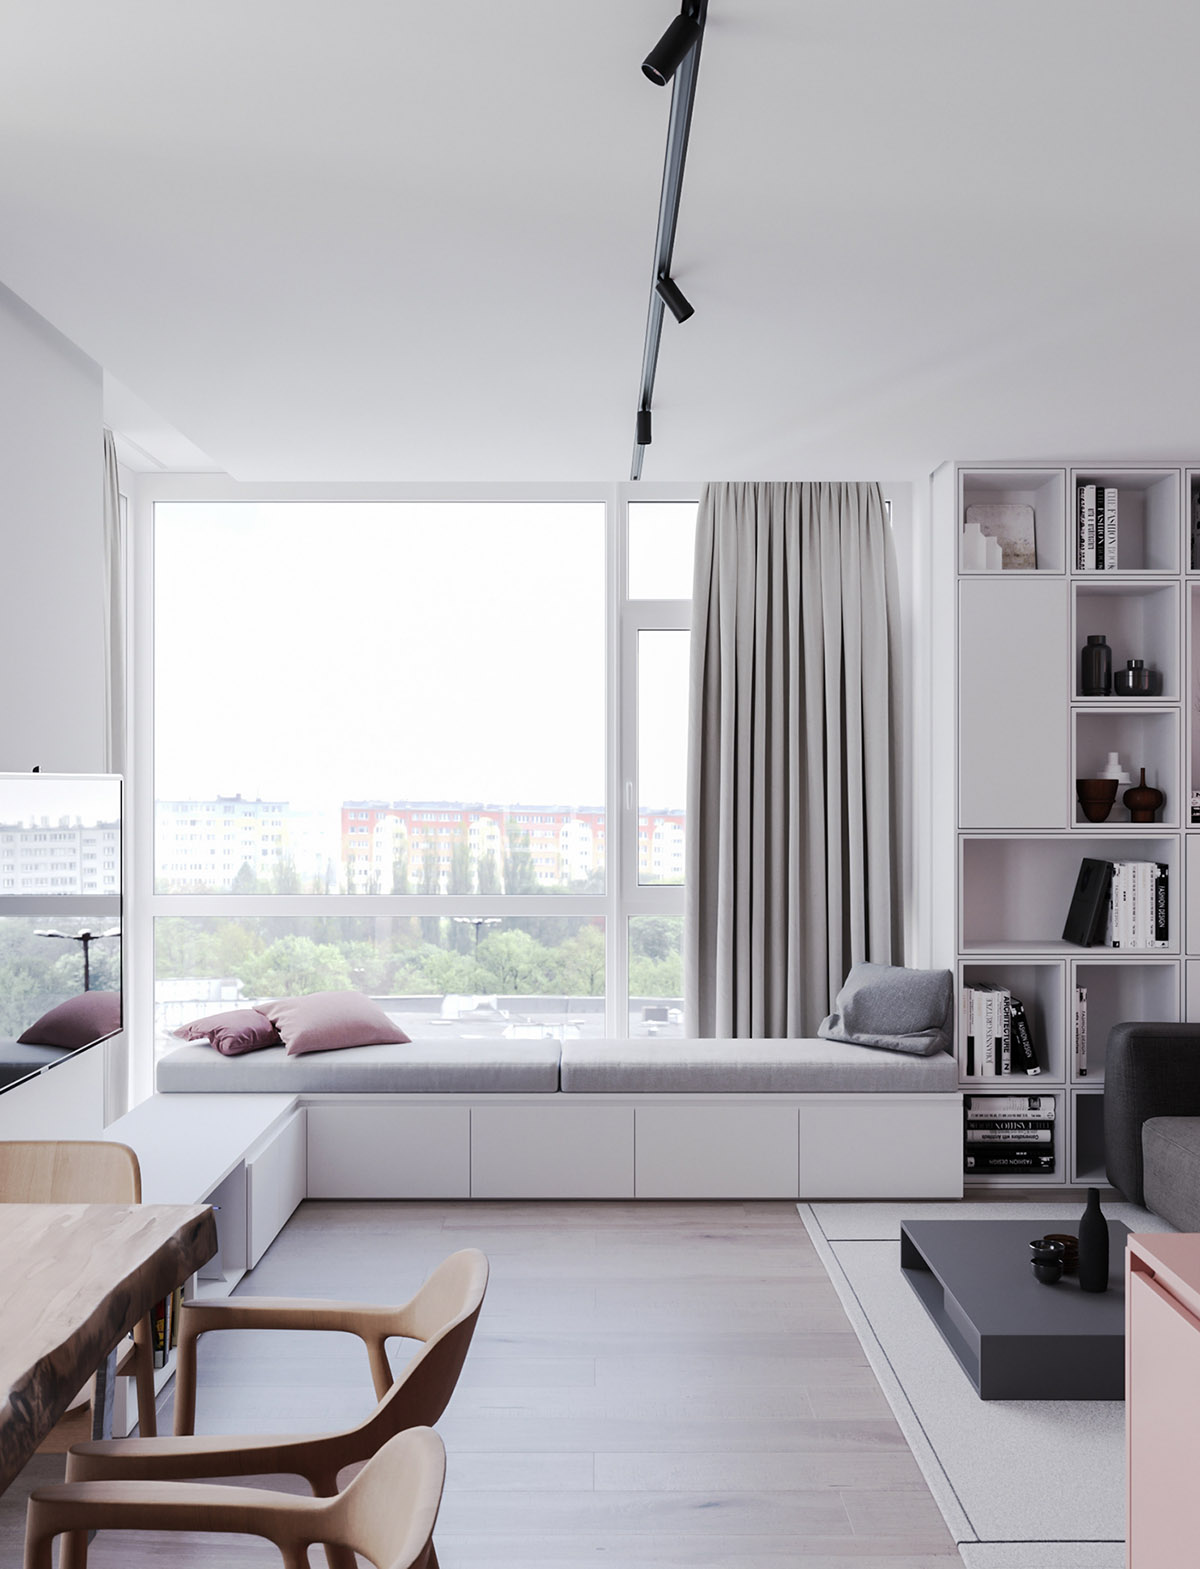 A Striking Example Of Interior Design Using Pink And Grey images 2